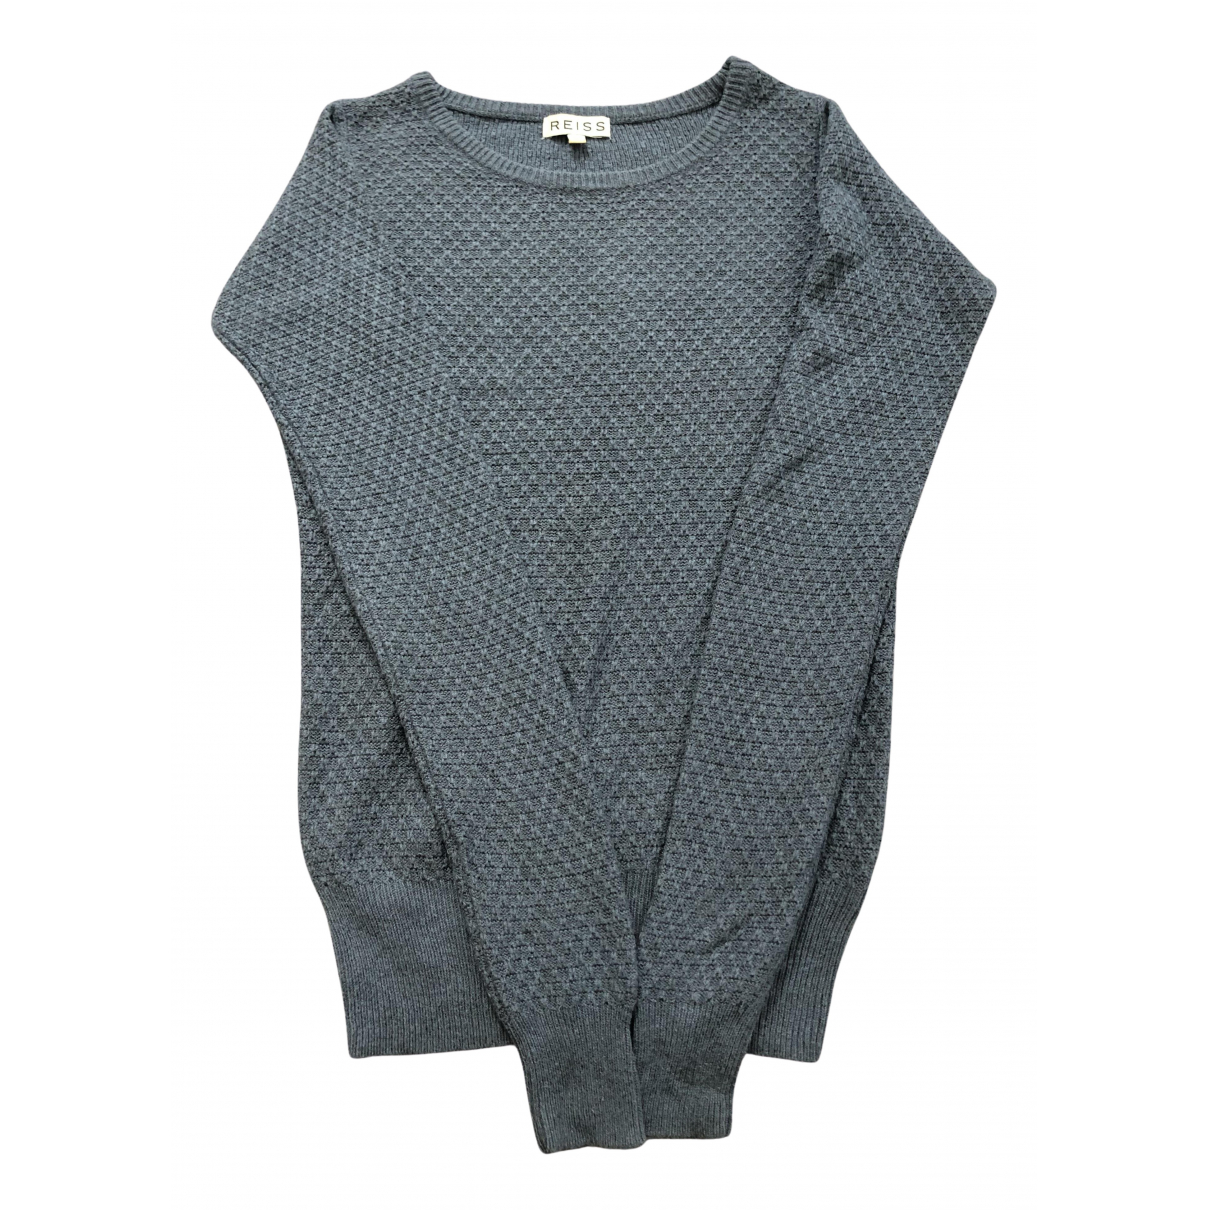 Reiss N Blue Knitwear for Women S International